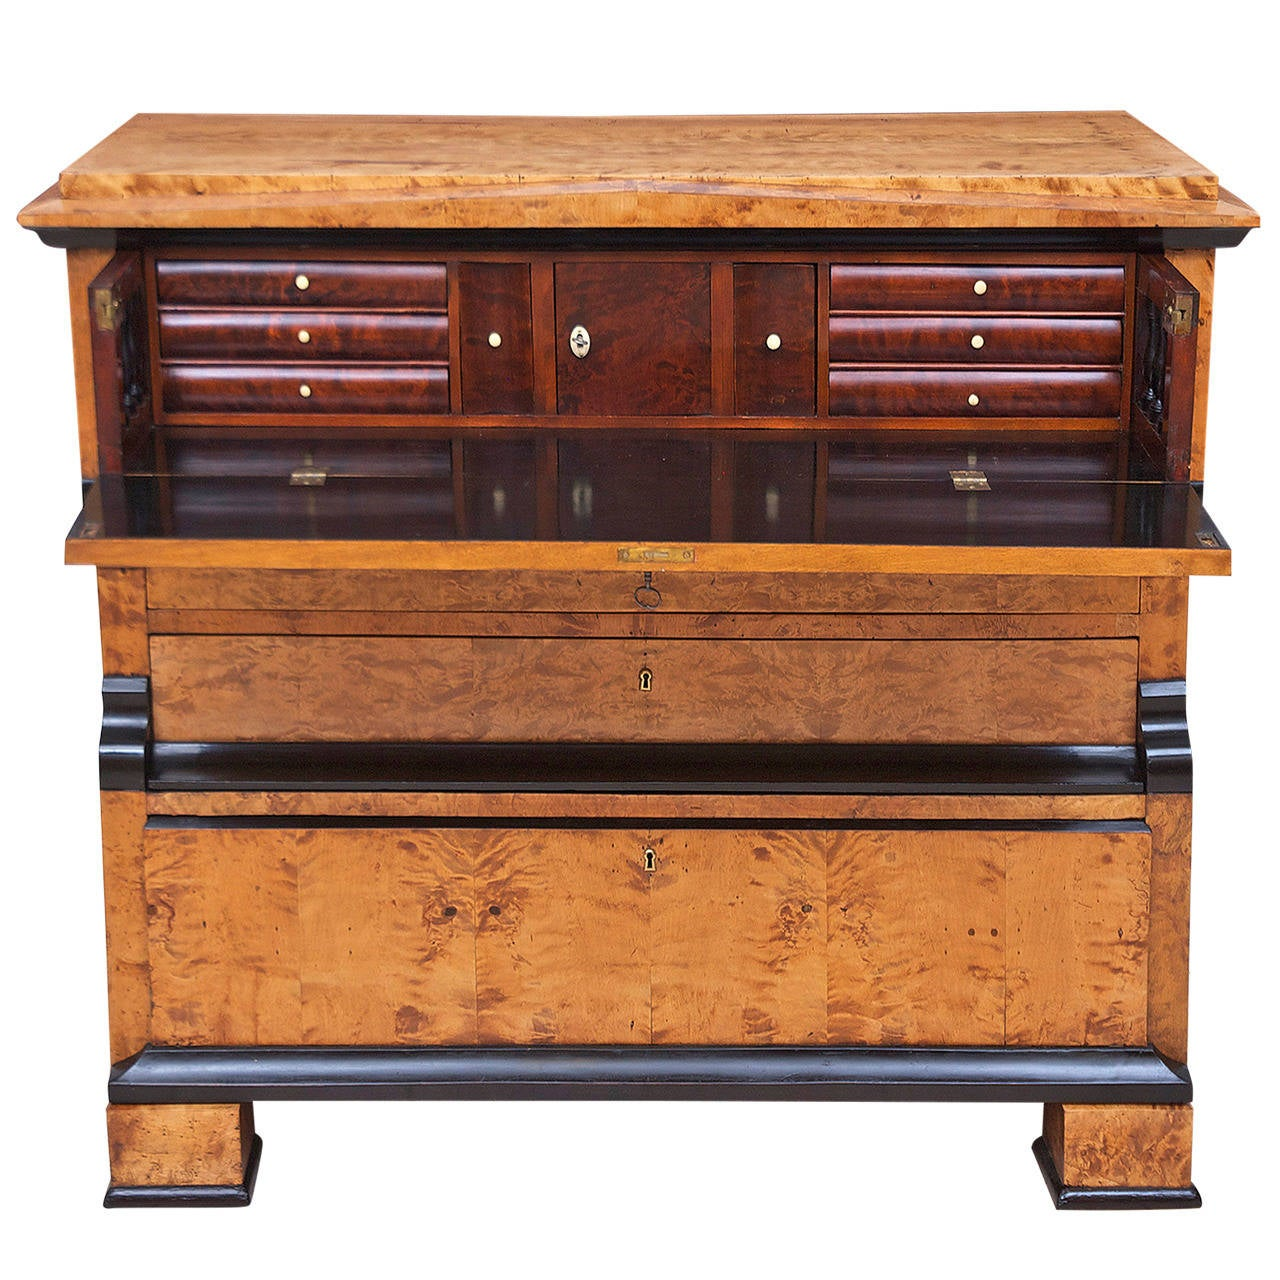 Polished Swedish Karl Johan Biedermeier Chest of Drawers with Pull Out Secretary in Birch For Sale